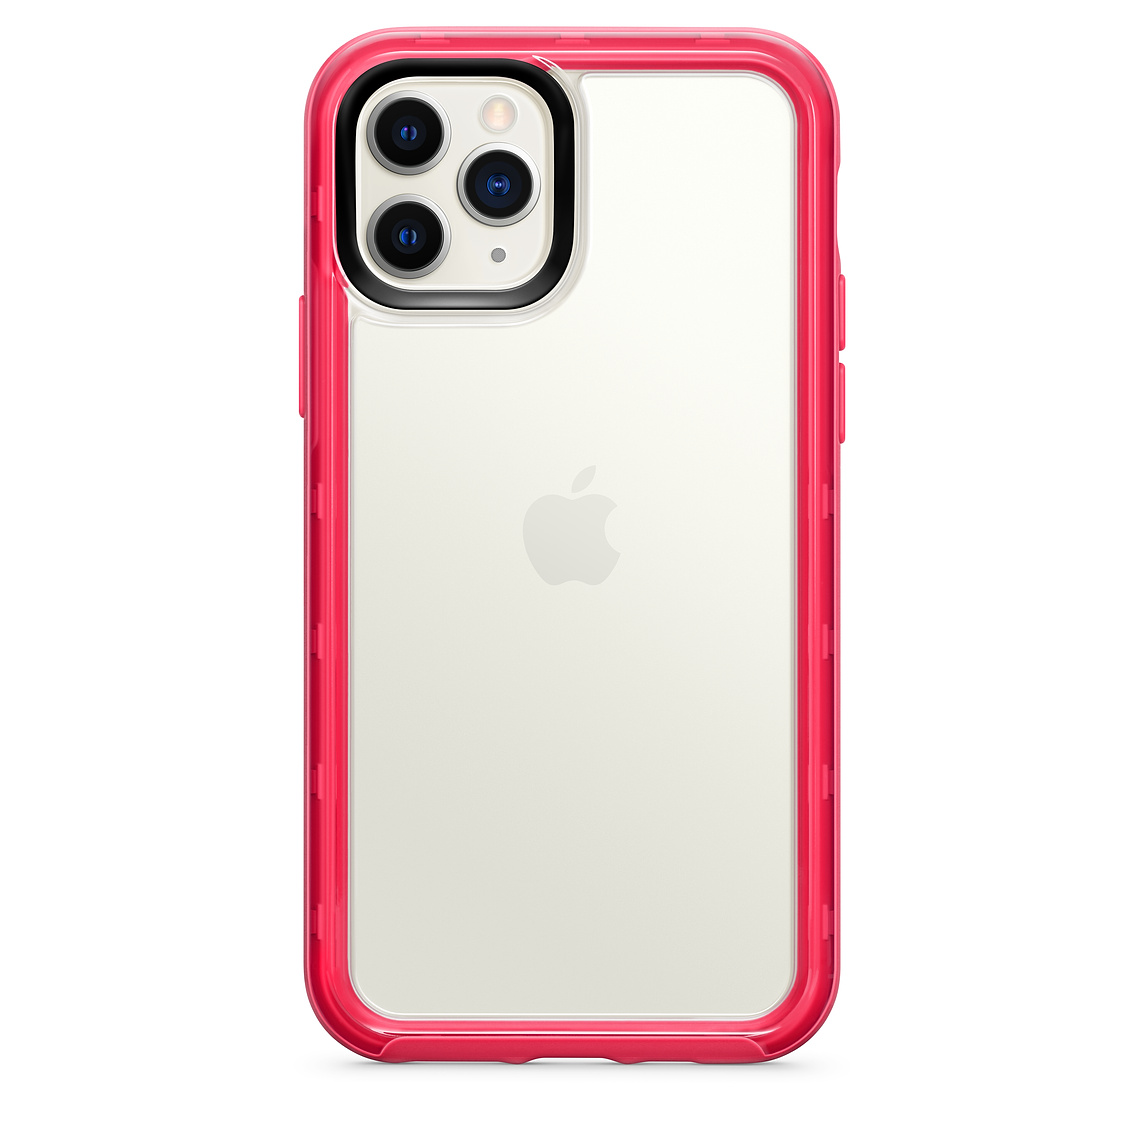 iPhone 11 Pro clear case from OtterBox